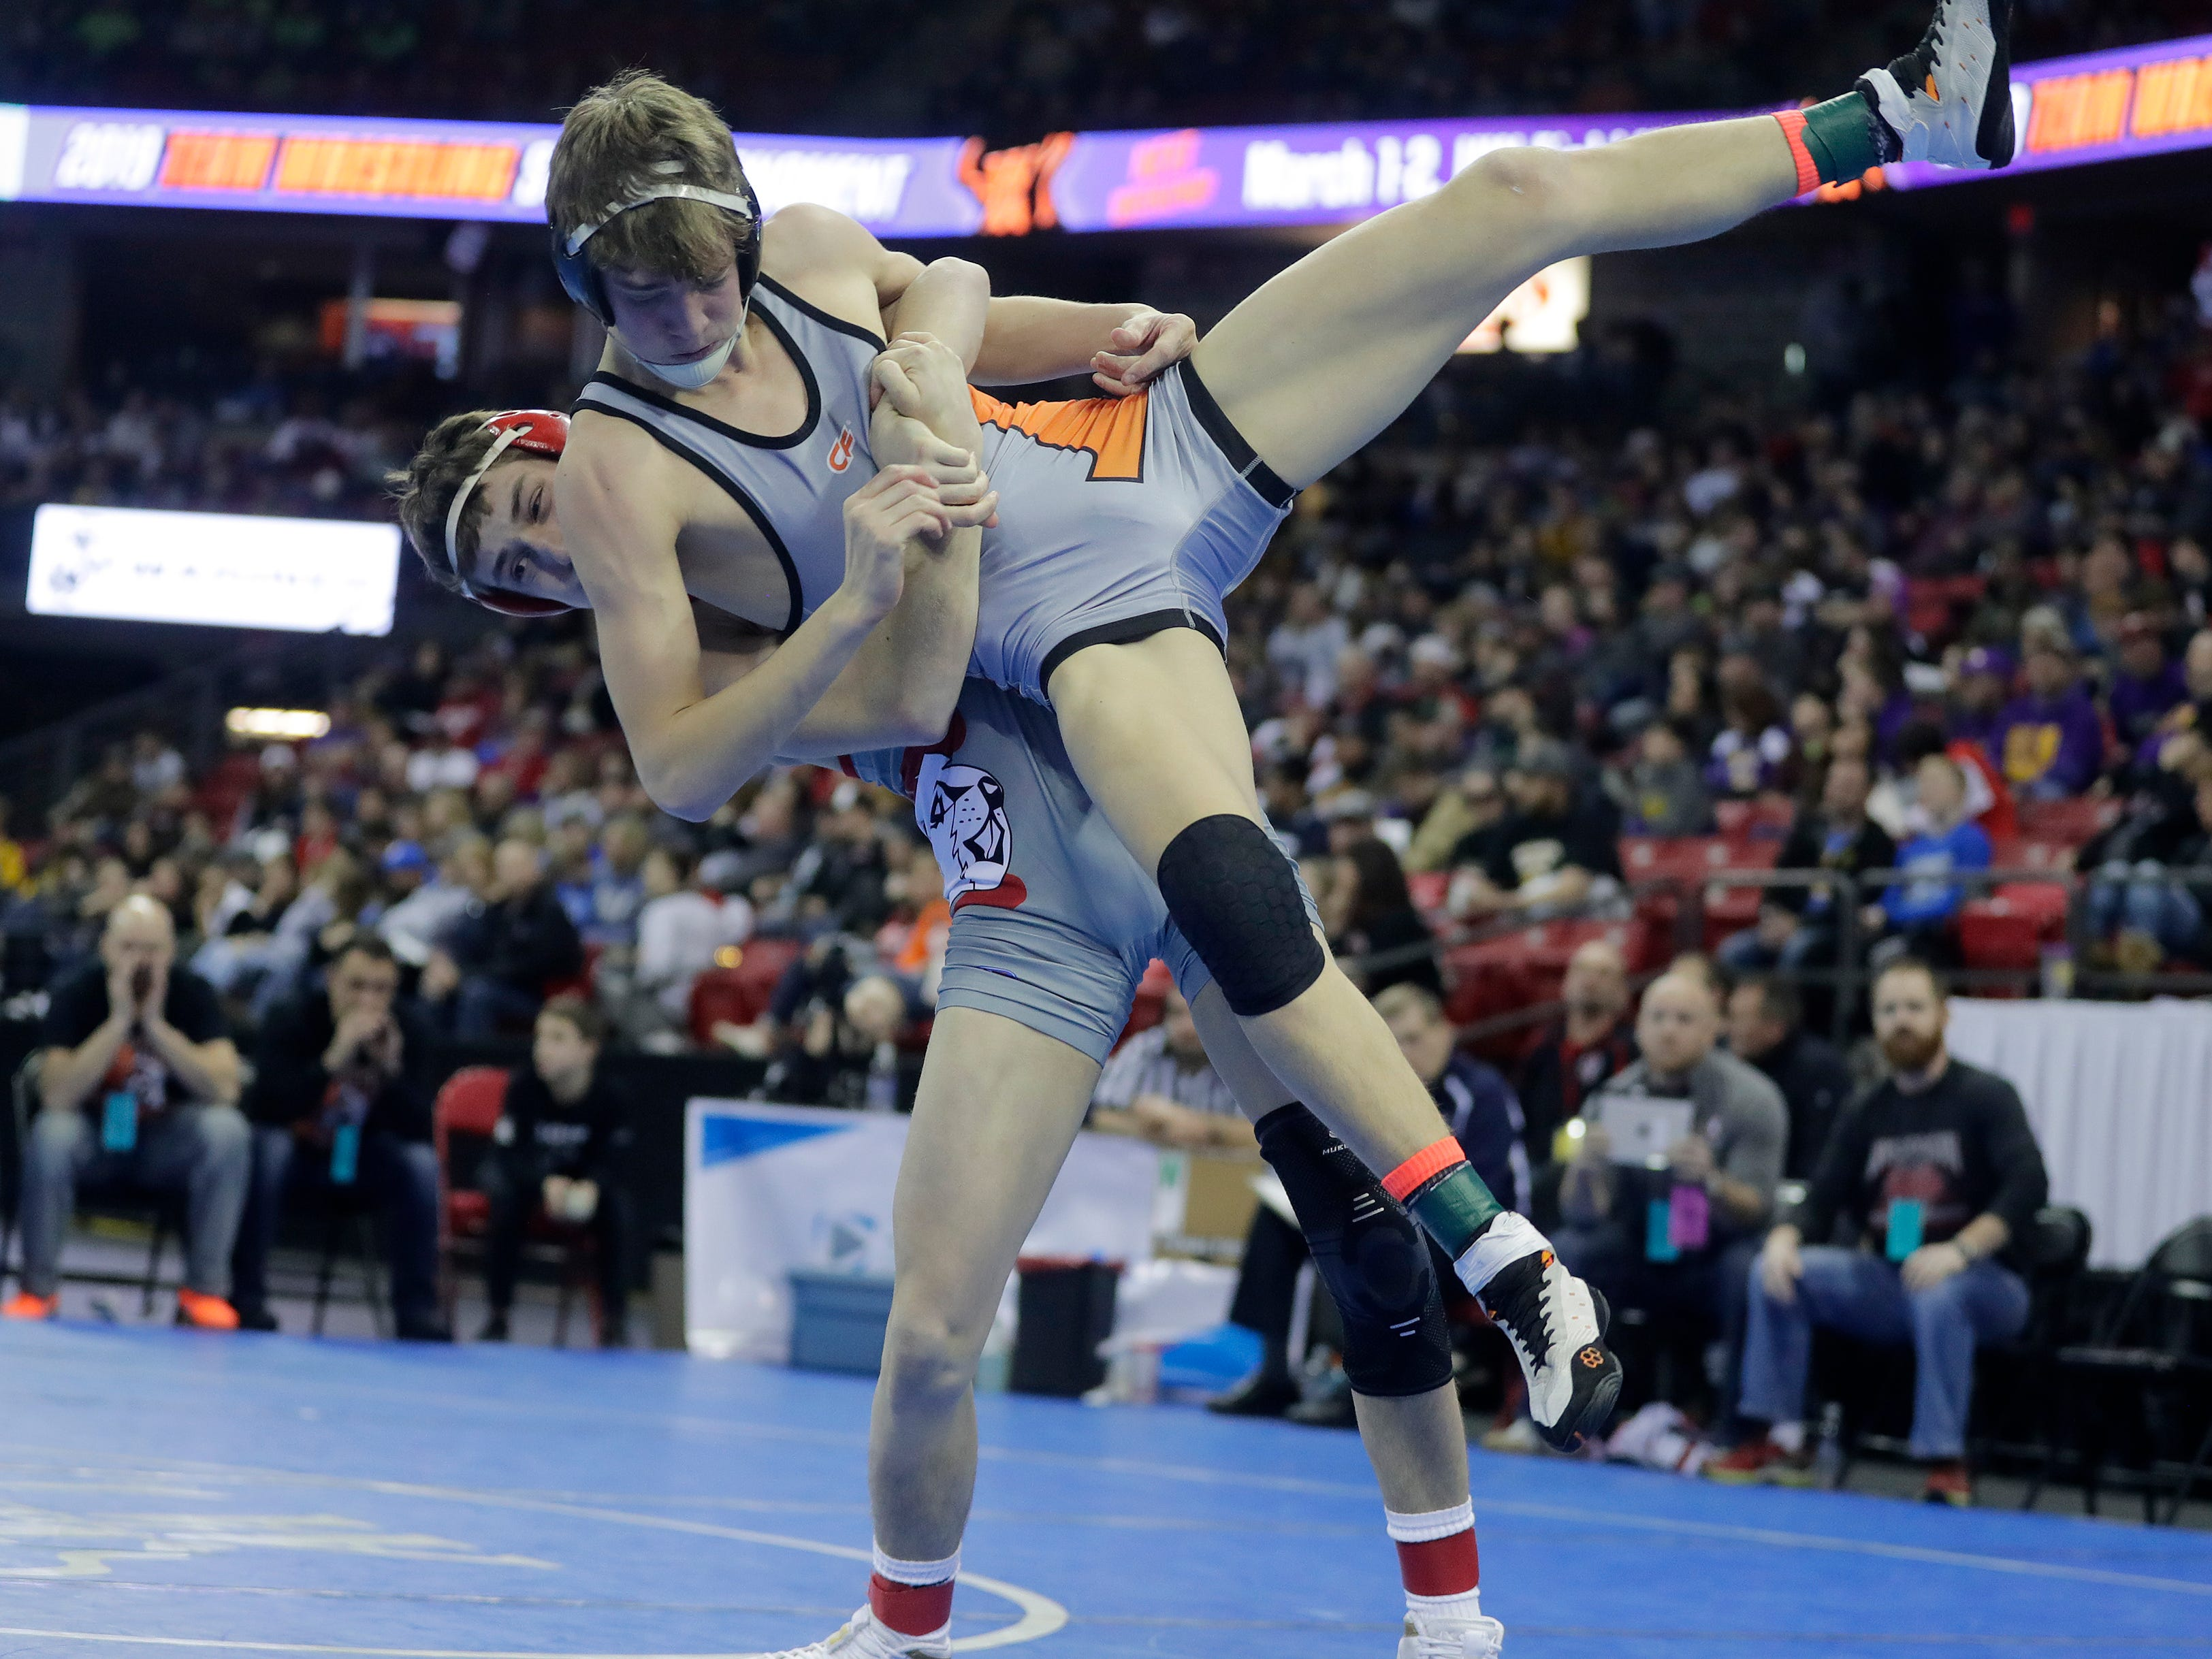 Cedar Grove-Belgium's Quinn Hoopman wrestles Cumberland's Benett Schramski in a Division 3 132-pound preliminary match at the WIAA state individual wrestling tournament at the Kohl Center on Thursday, February 21, 2019 in Madison, Wis.